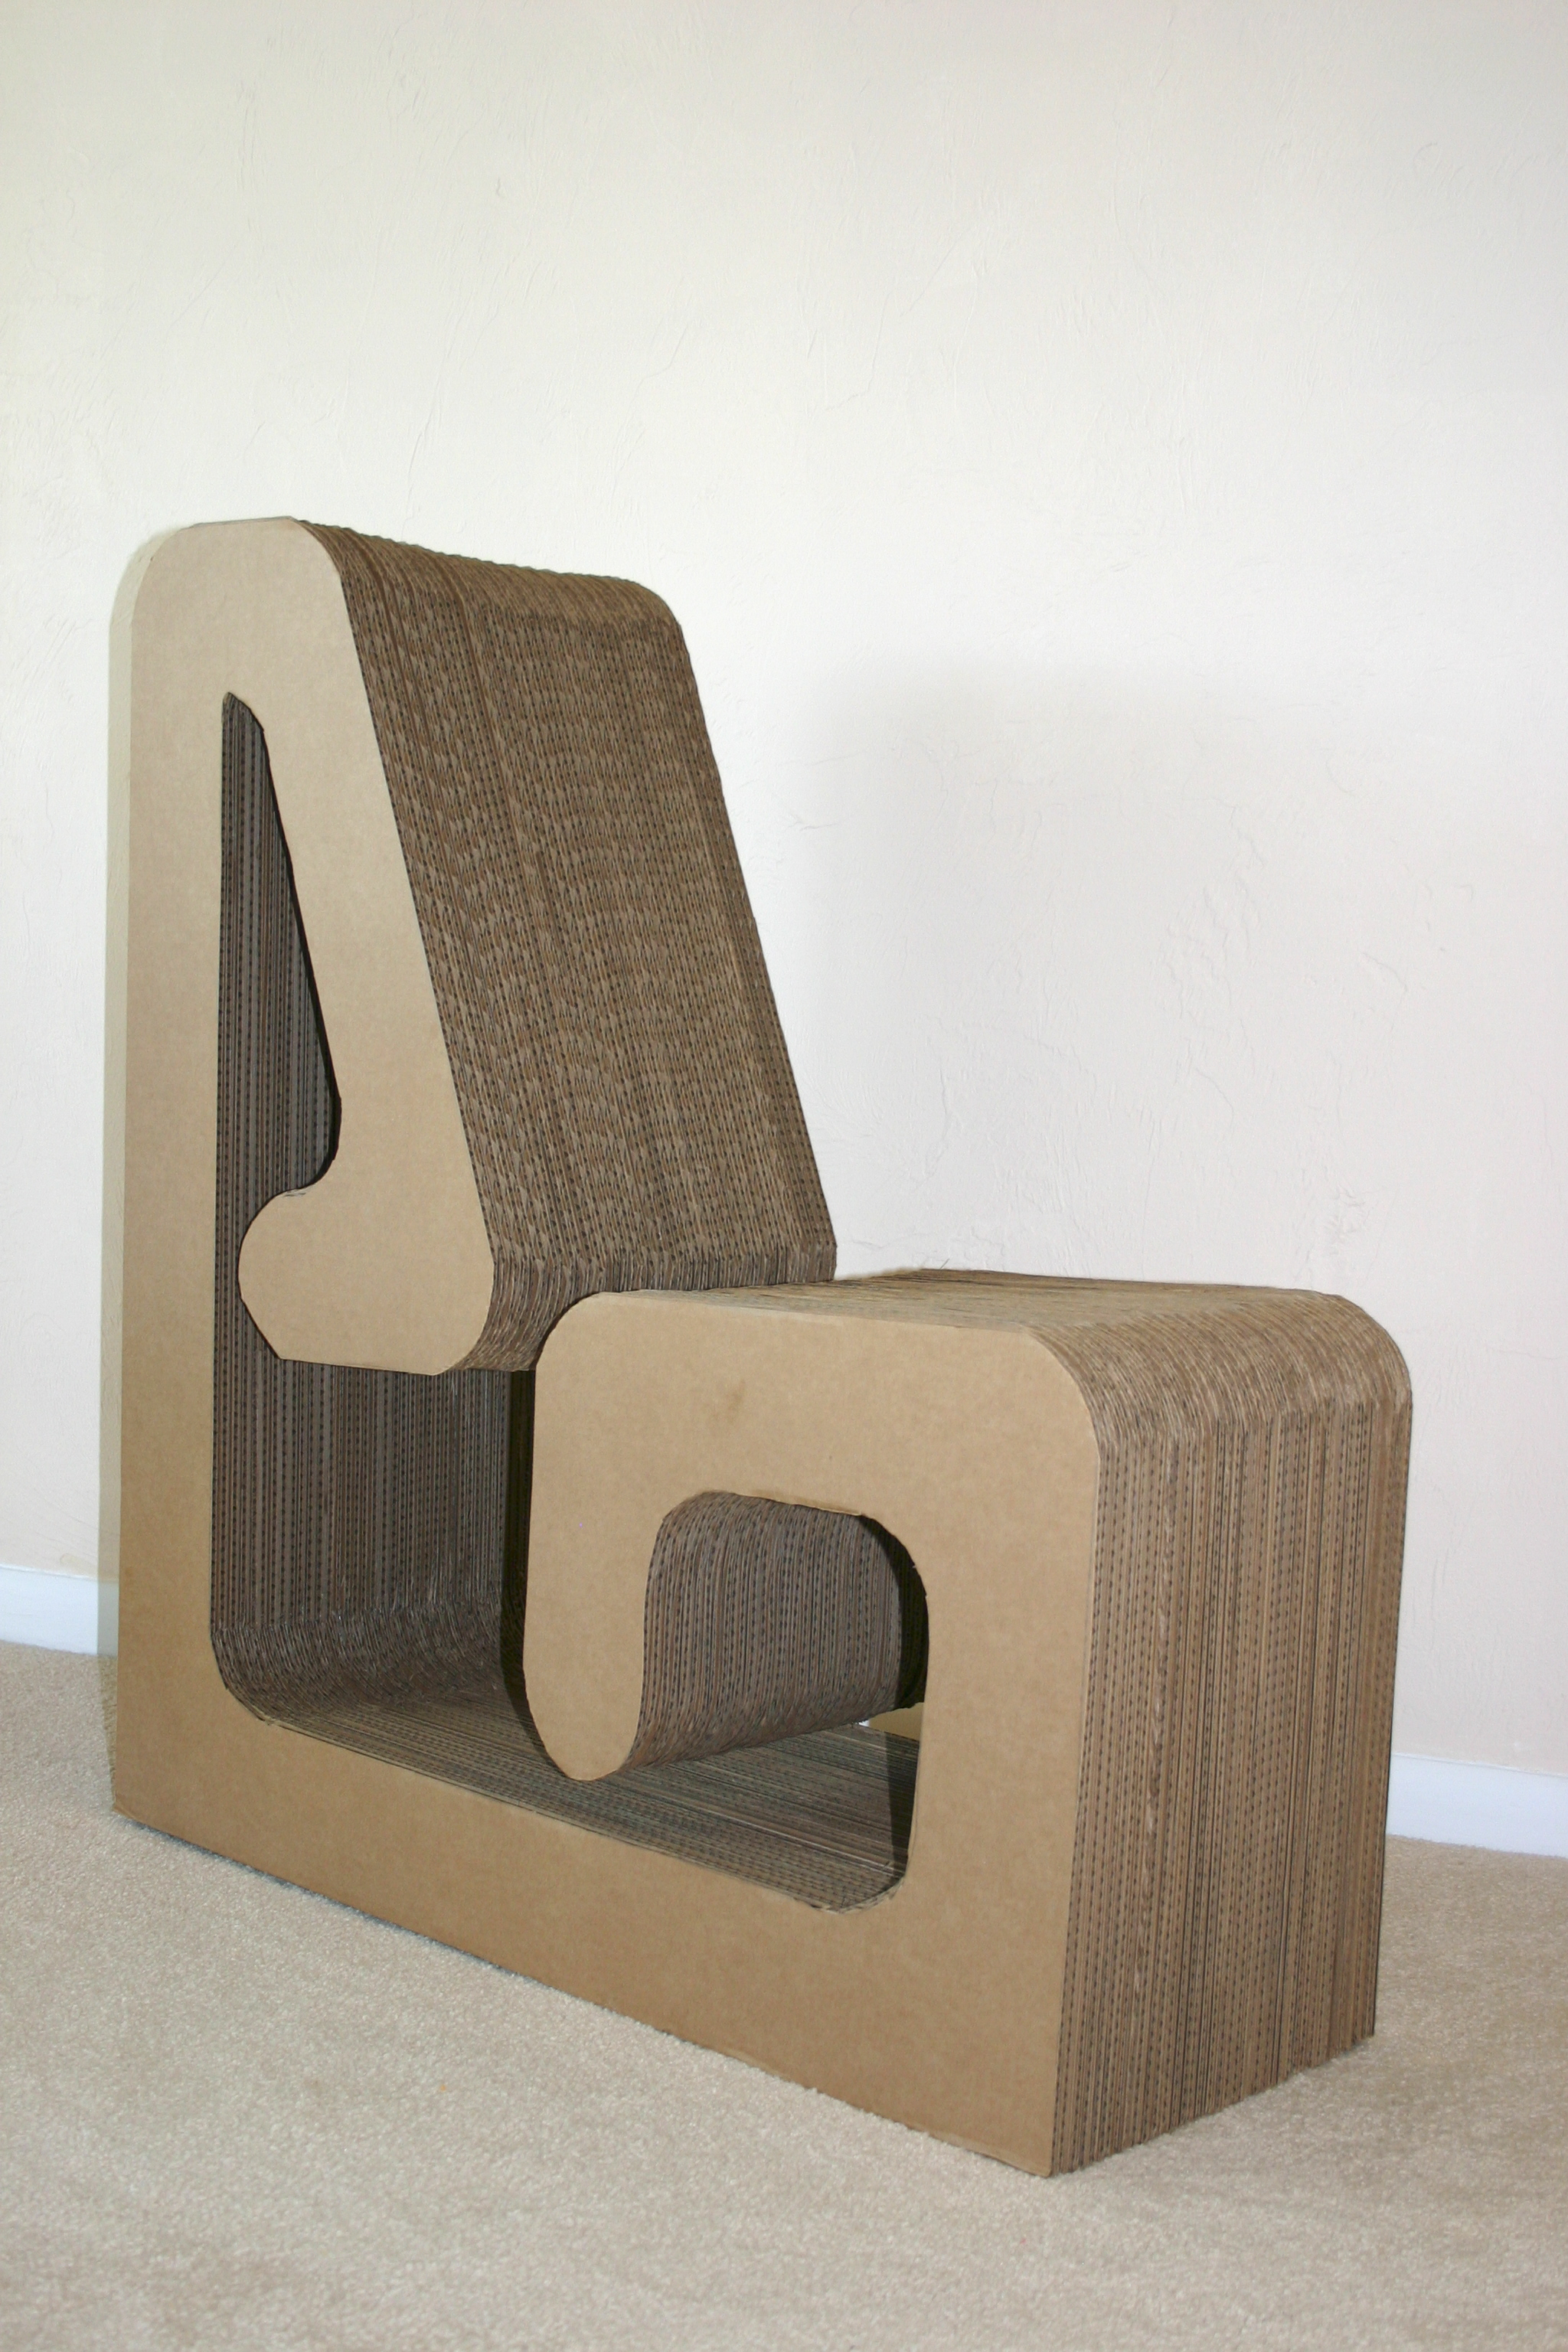 Cardboard rocking chair - Cardboard Rocking Chair 19